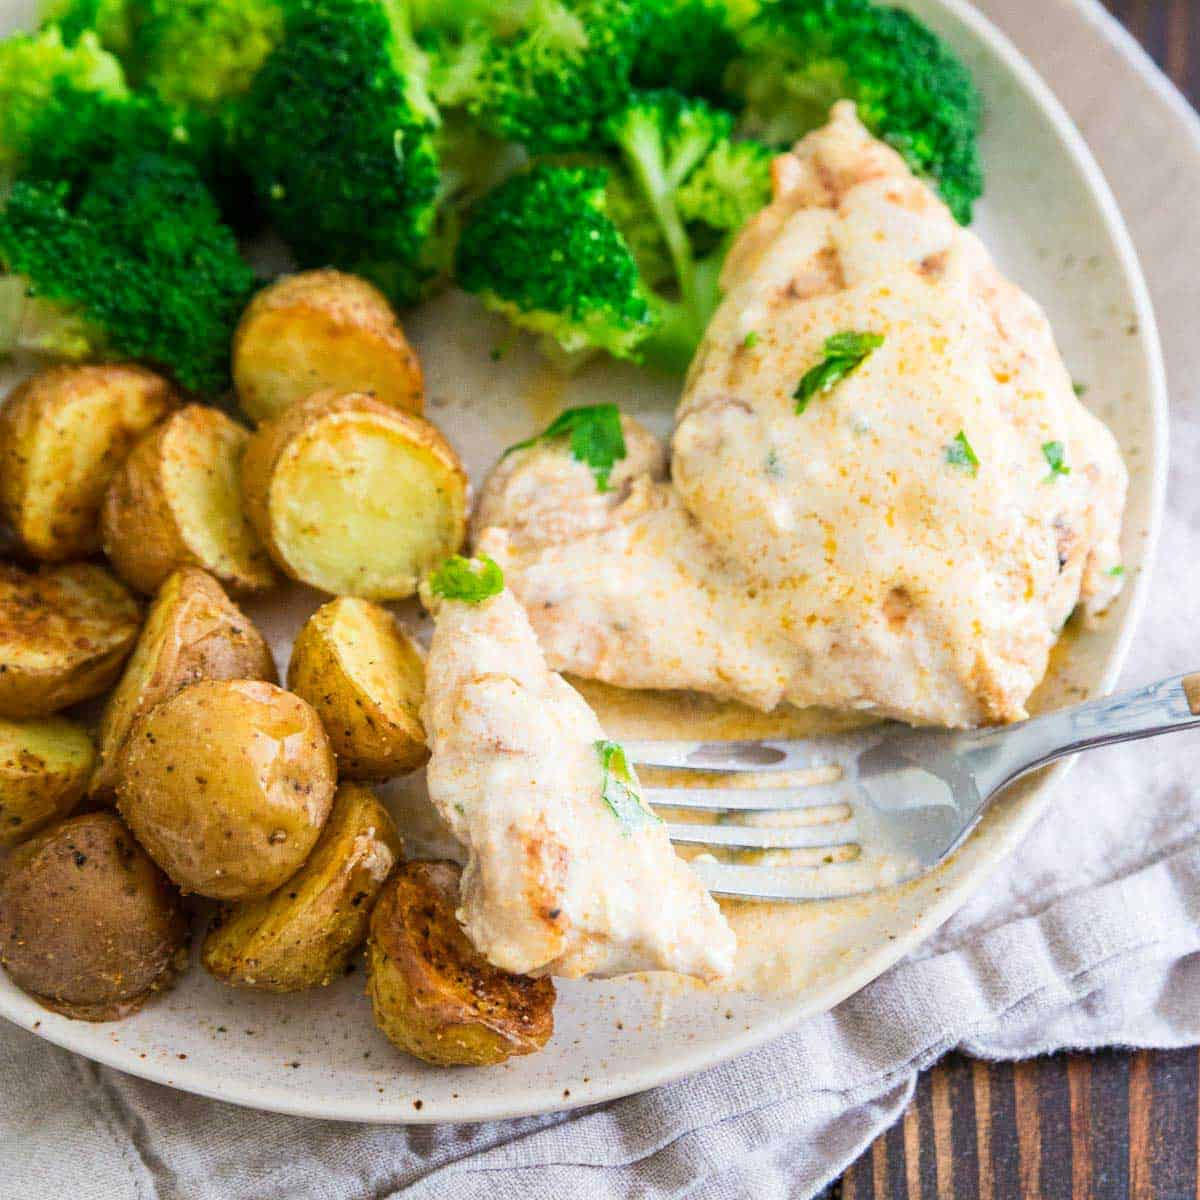 5 spices and a cream cheese sauce make this chicken dinner a meal everyone will love.